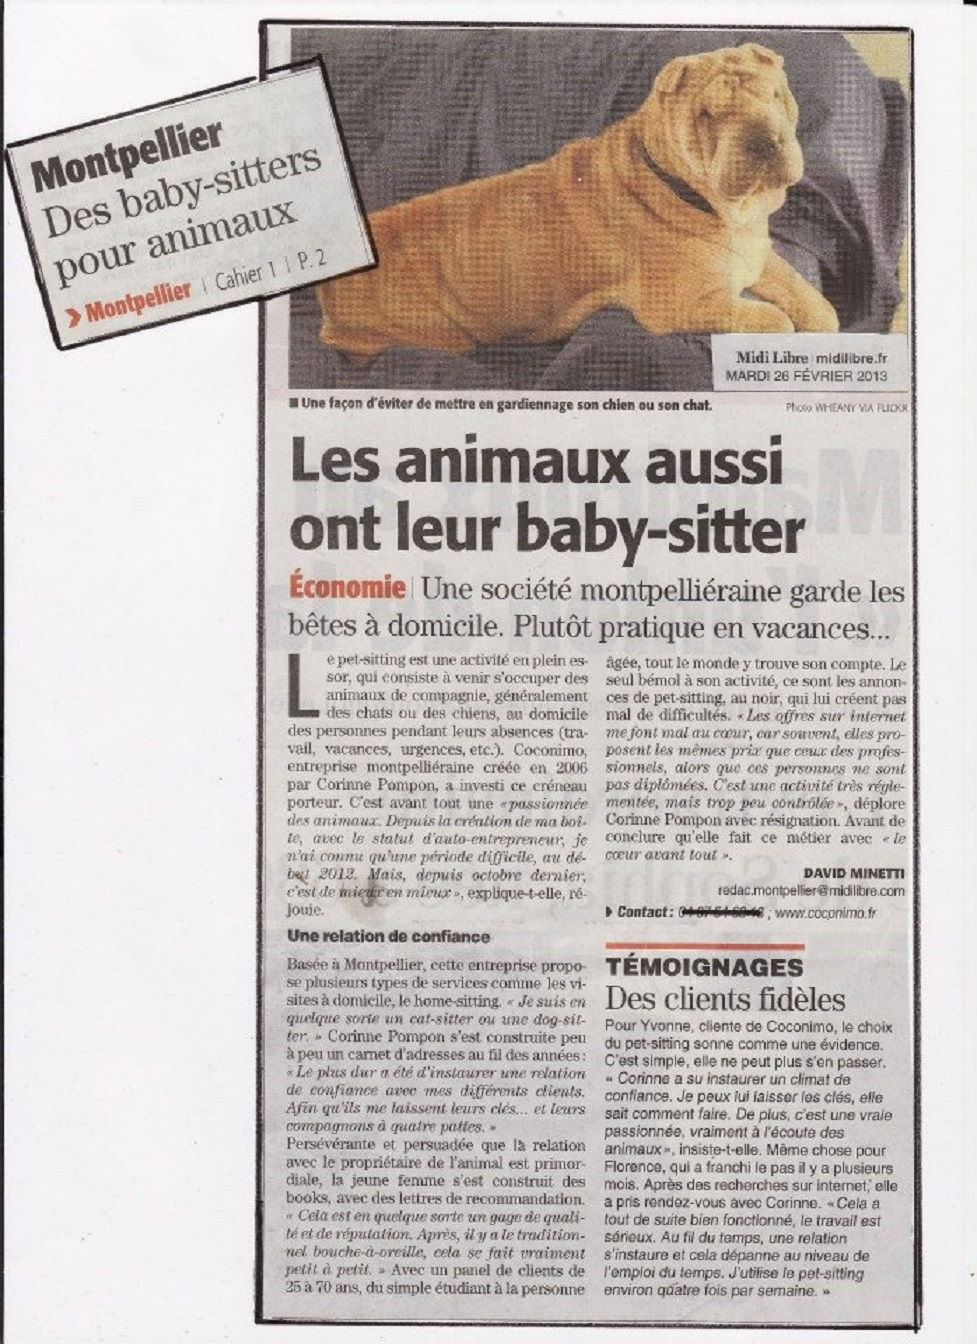 baby sitter pour animaux à montpellier